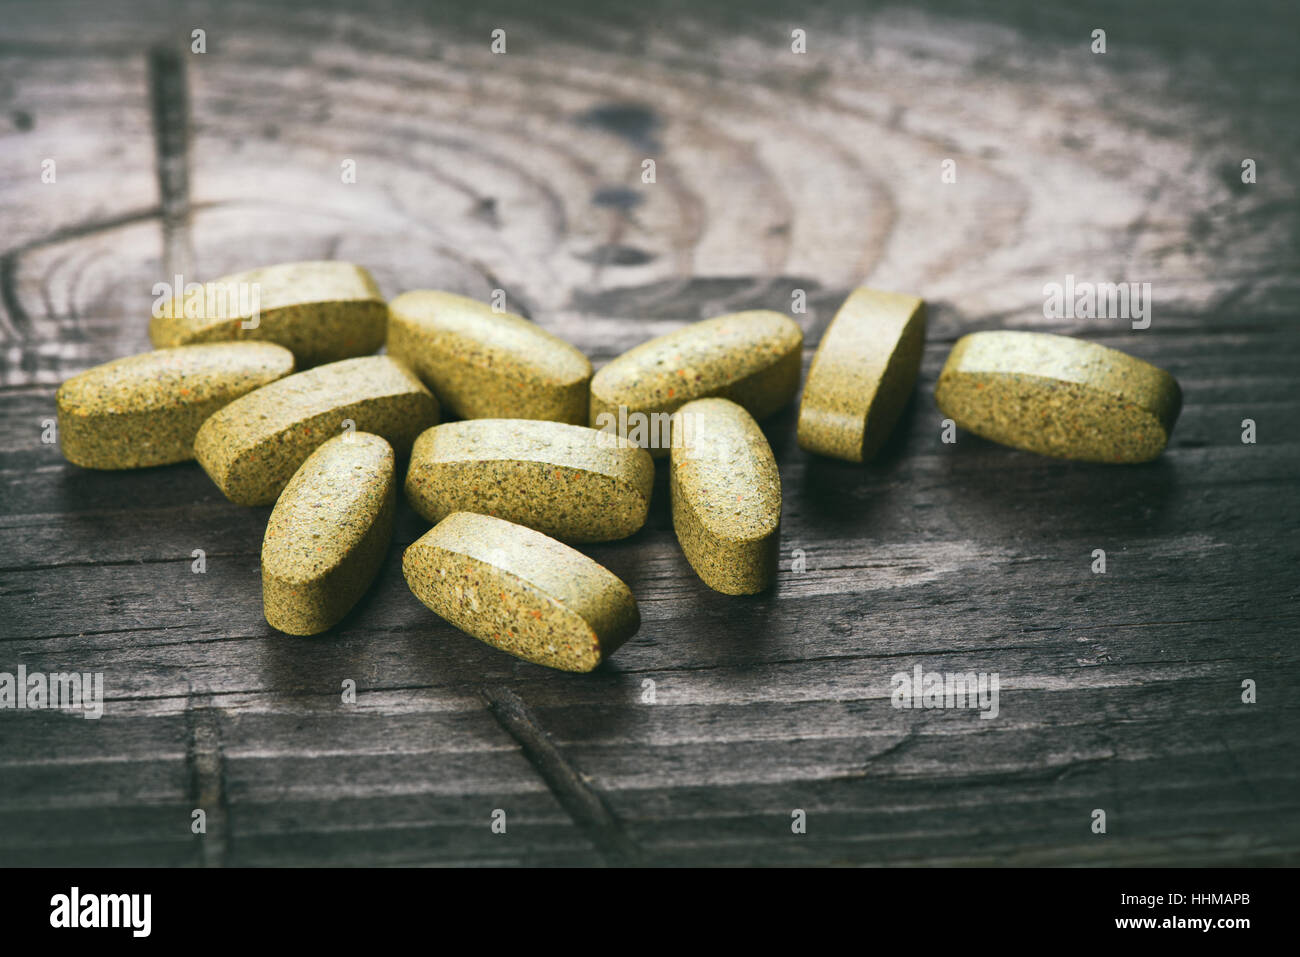 Green tablets. dietary supplements on a wooden table - Stock Image